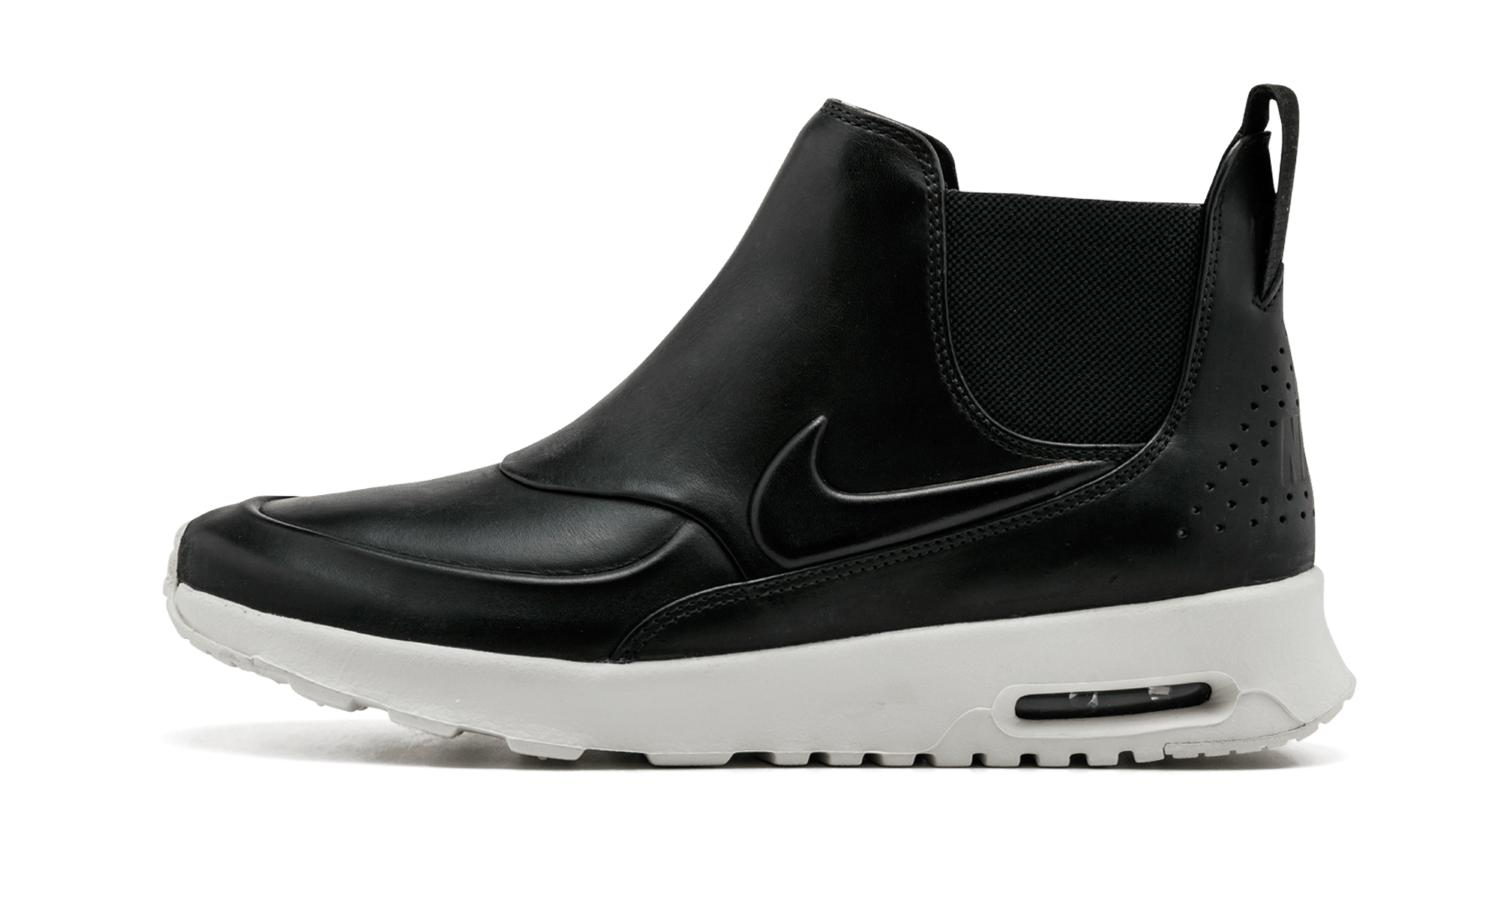 04db7b1cb3d Lyst - Nike Air Max Thea Running Mid Top Athletic Shoes in Black for Men